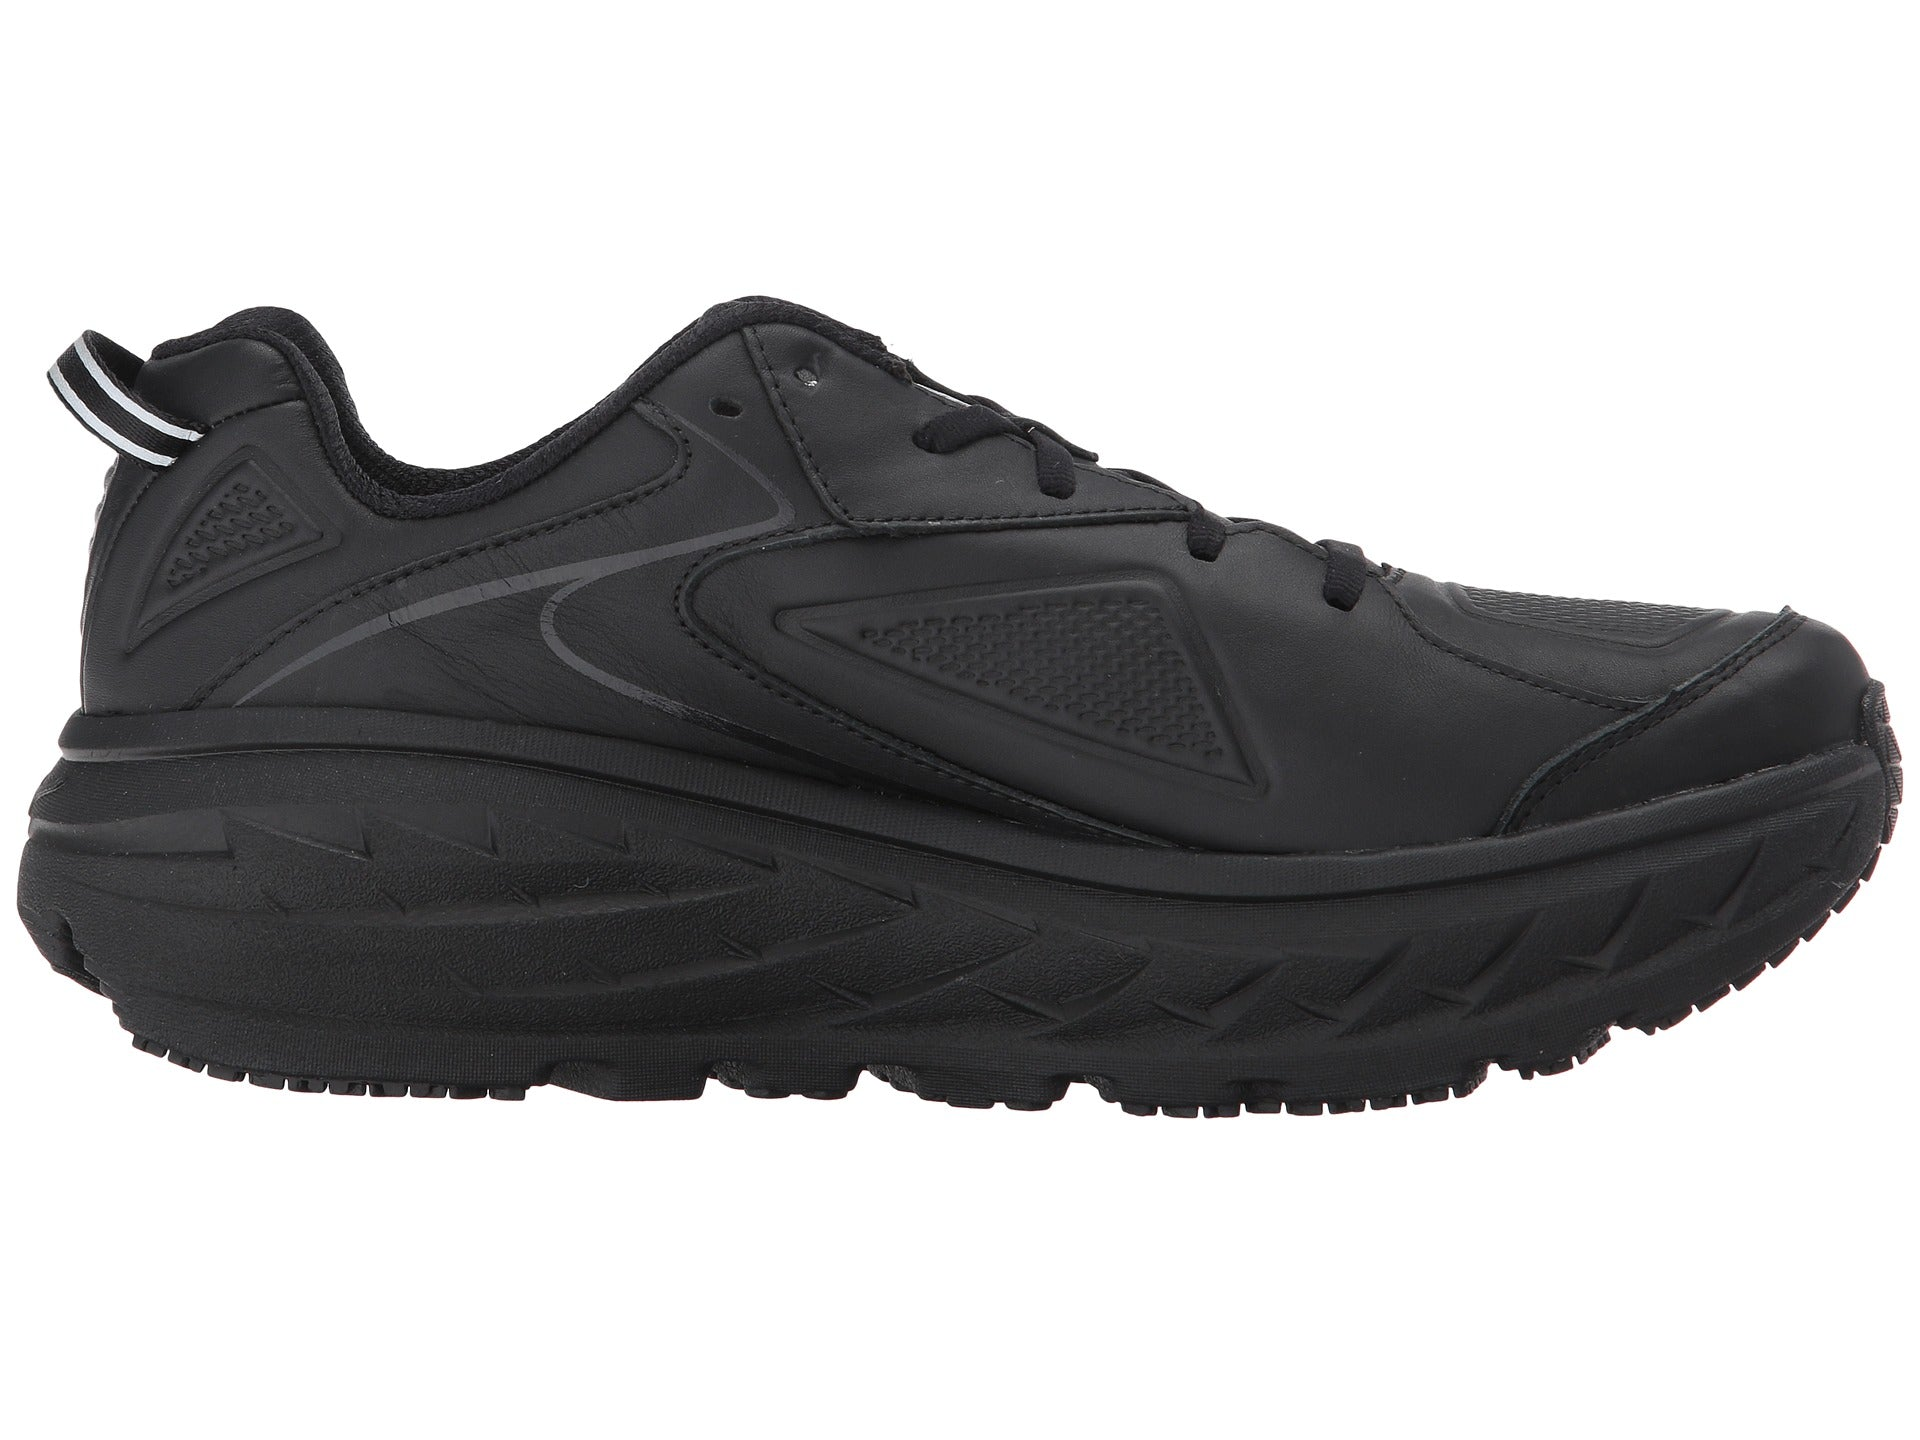 Hoka Bondi Leather (Men's) Black